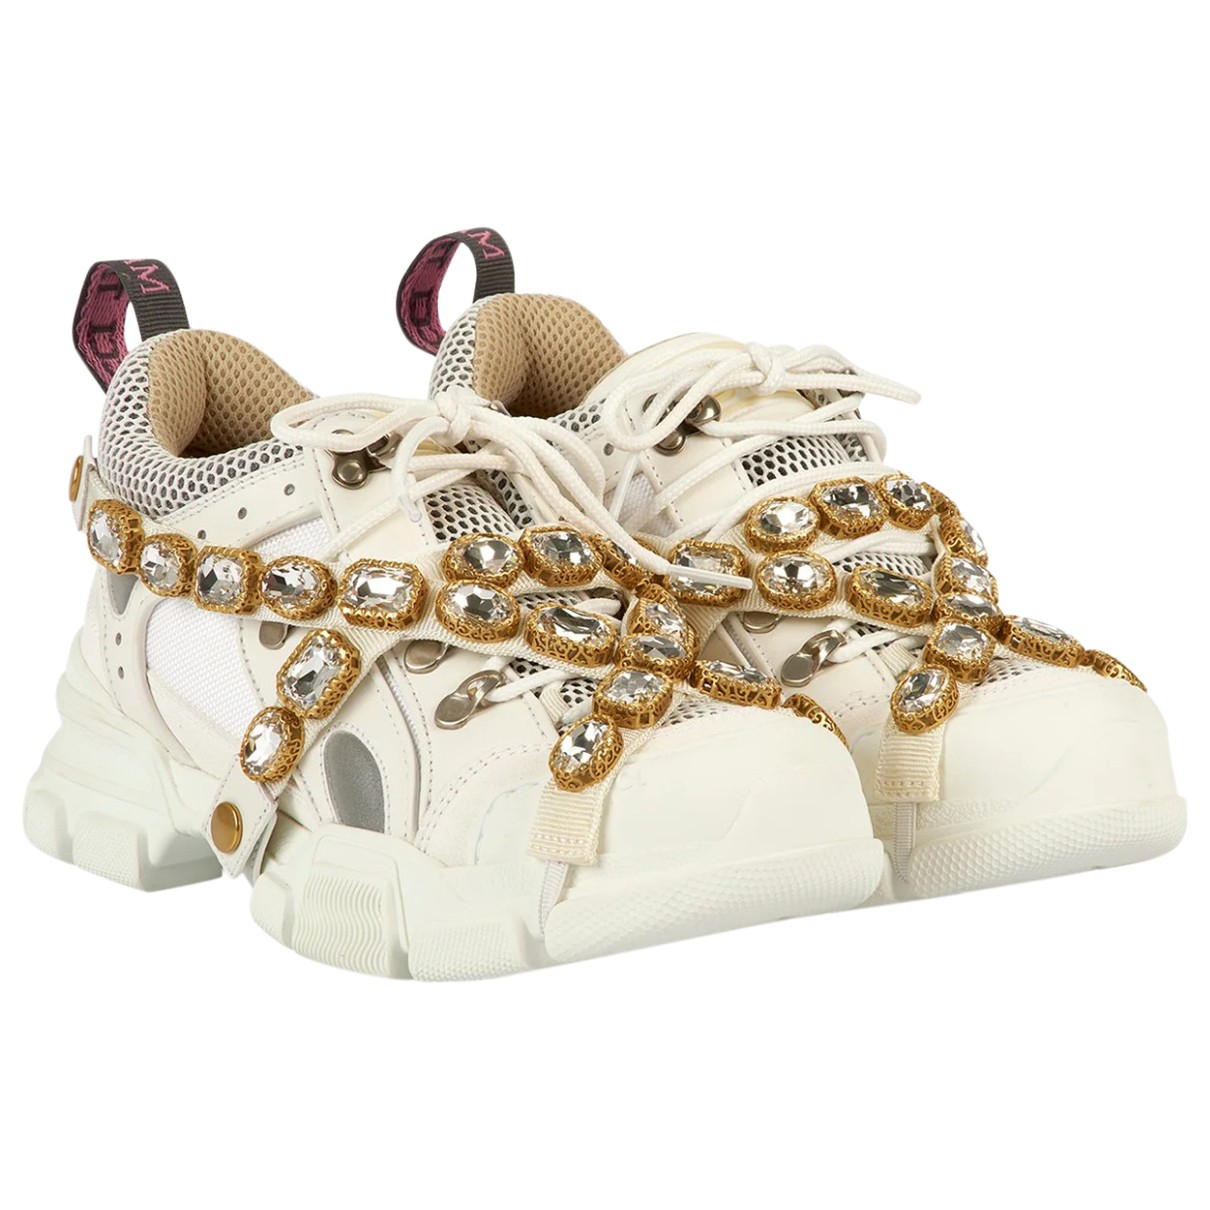 Gucci Flashtrek White Leather Trainers for Women 5 UK